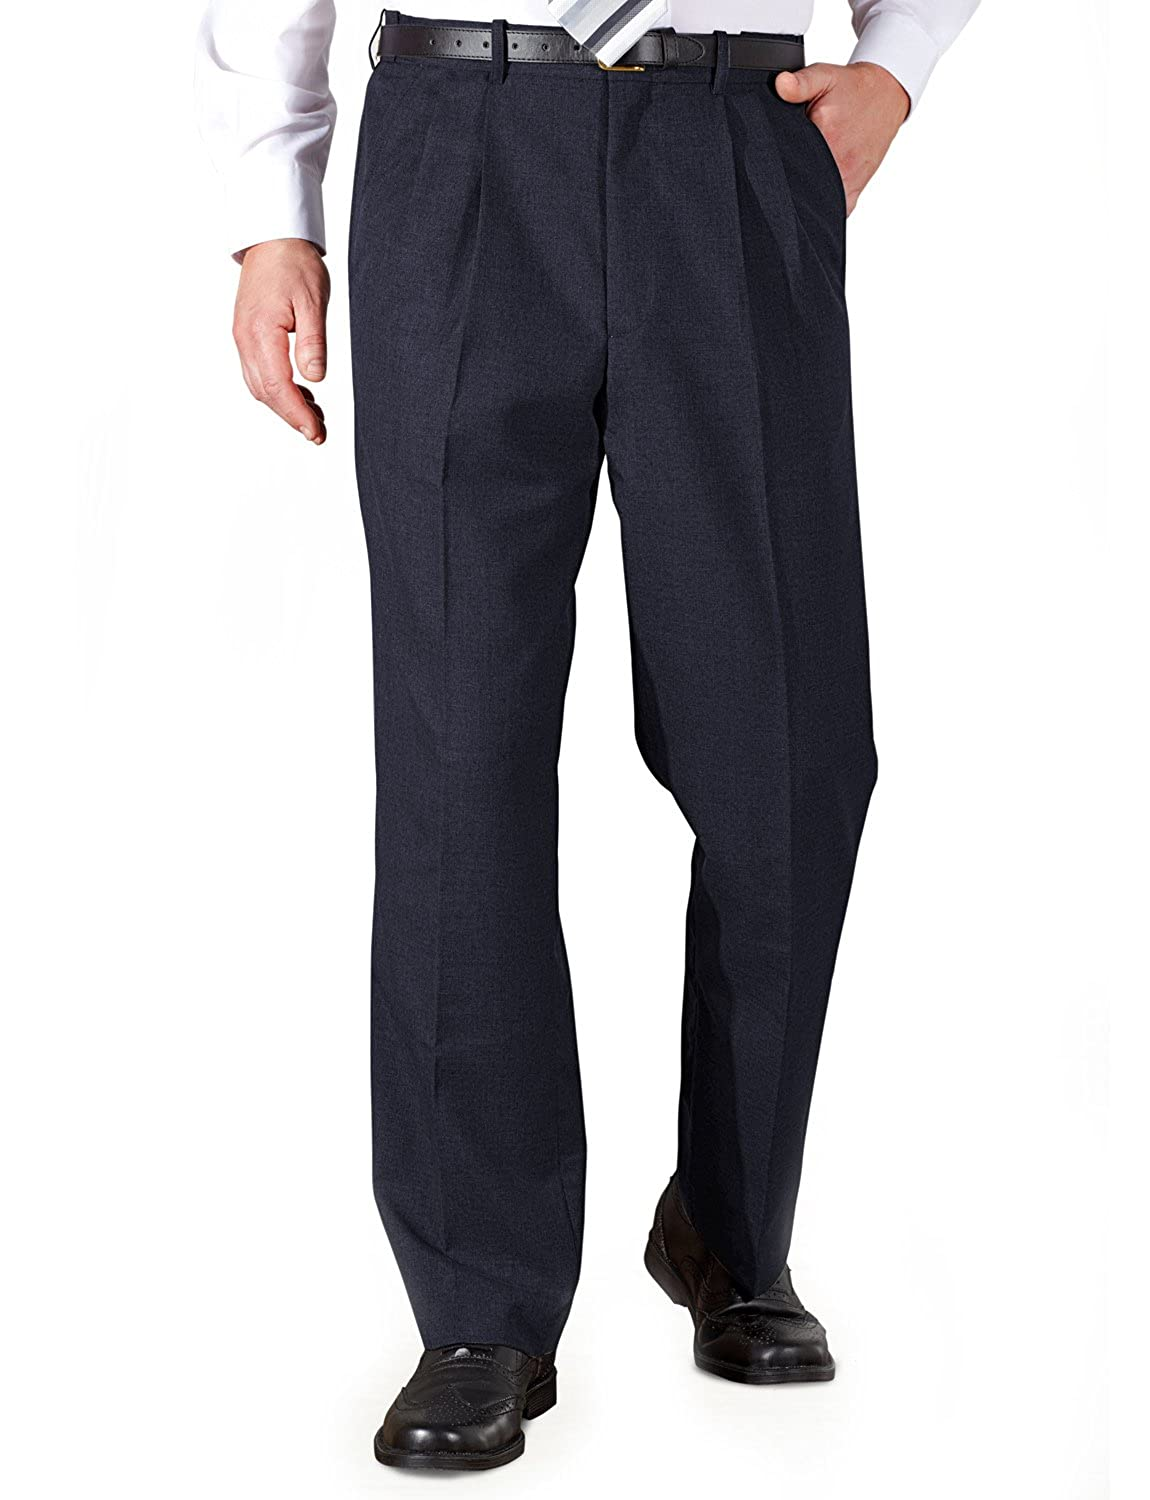 1920s Men's Pants, Trousers, Plus Fours, Knickers Chums Mens Poly Viscose Pleated Trouser Pants with Extra Stretch Waistband $49.13 AT vintagedancer.com